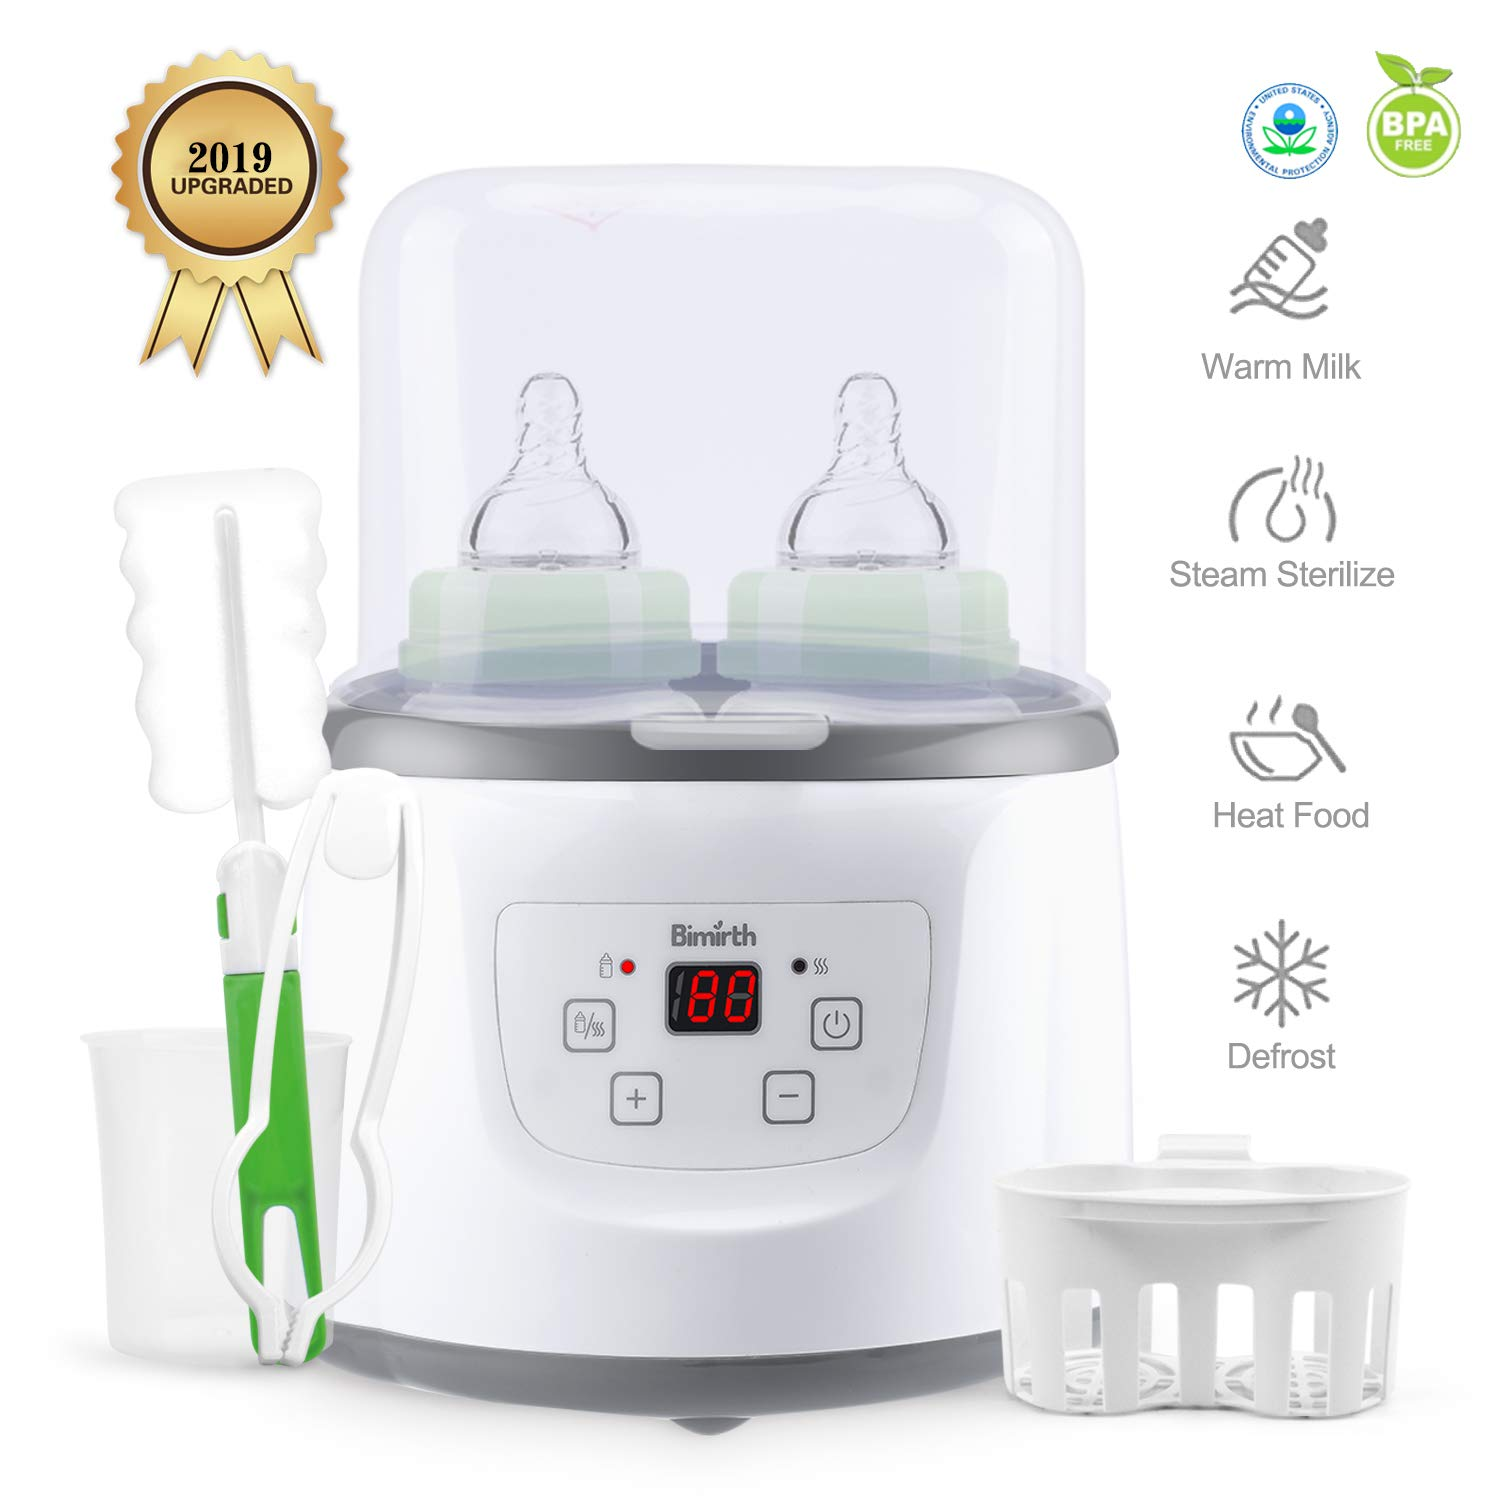 Baby Bottle Warmer Bottle Sterilizer Smart Portable Bottle Warmer and Baby Food Heater for Breast Milk or Formula with LCD Real-time Display Fast Warming by Smartip